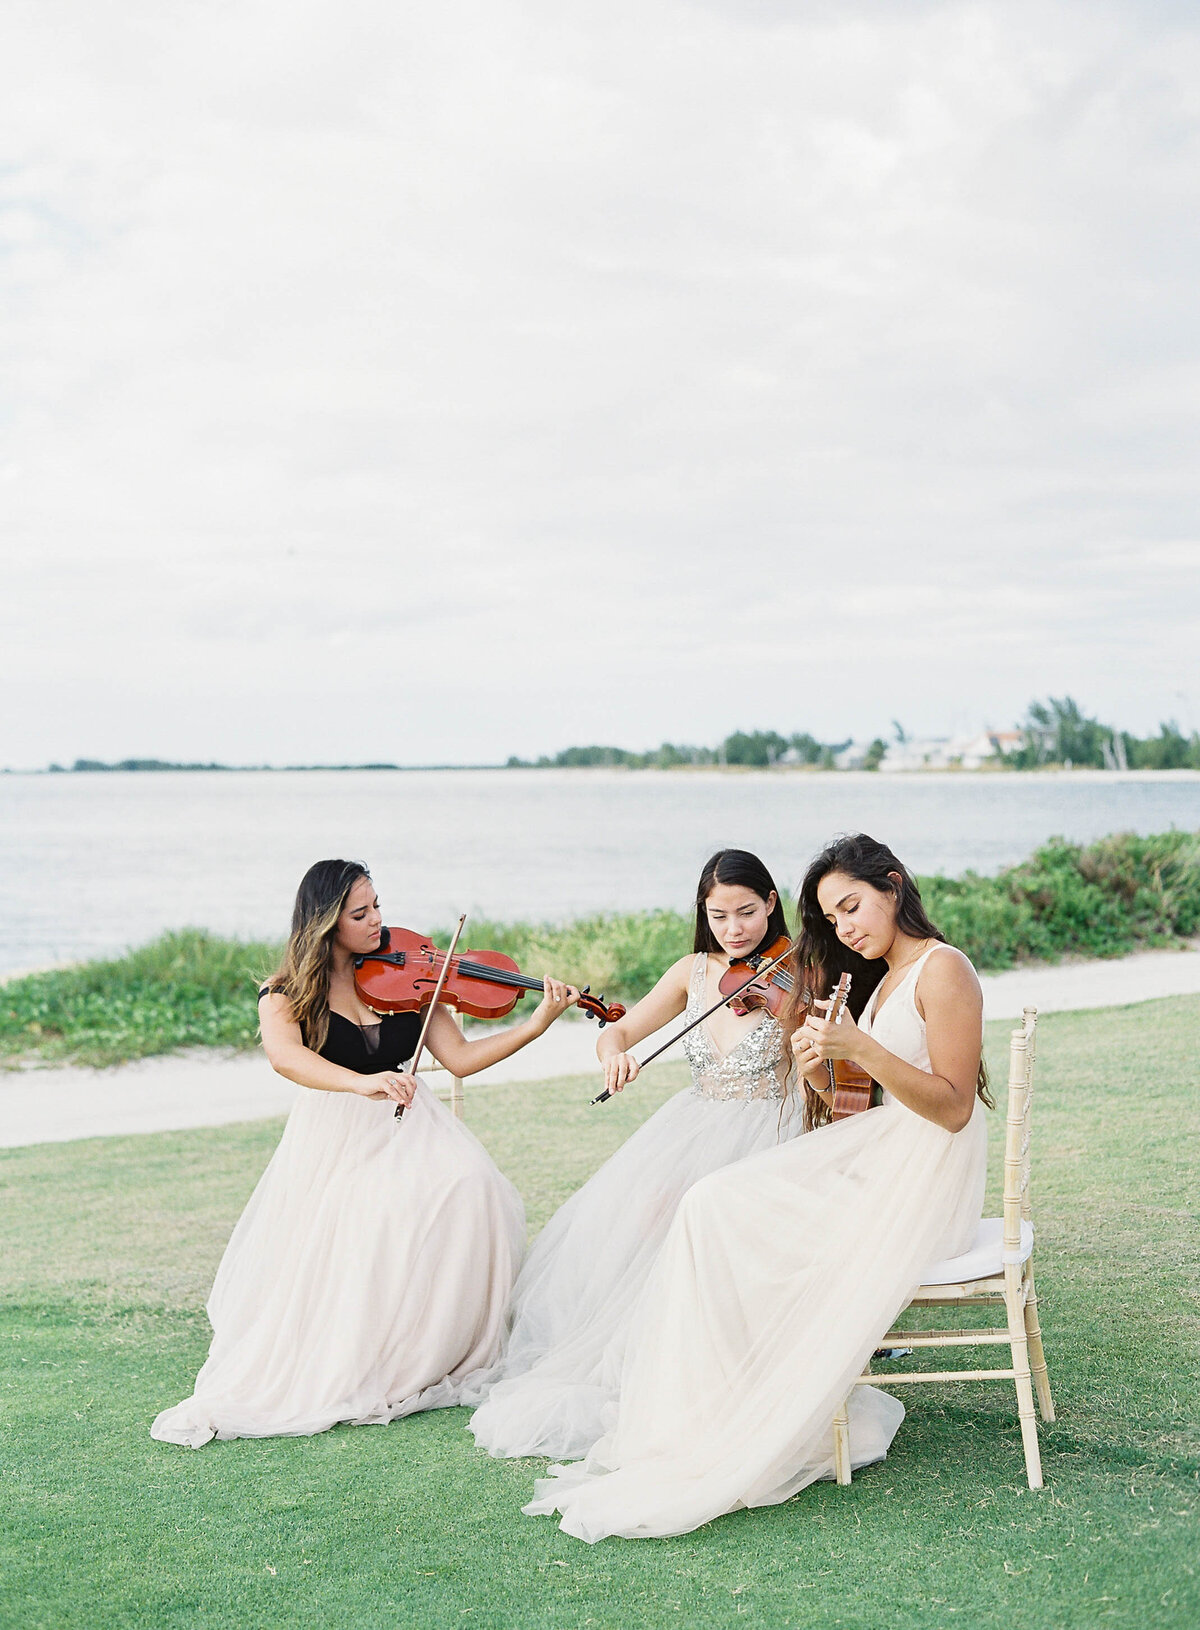 South_Seas_Island_Resort_Captiva_Island_Wedding_Photographer-15